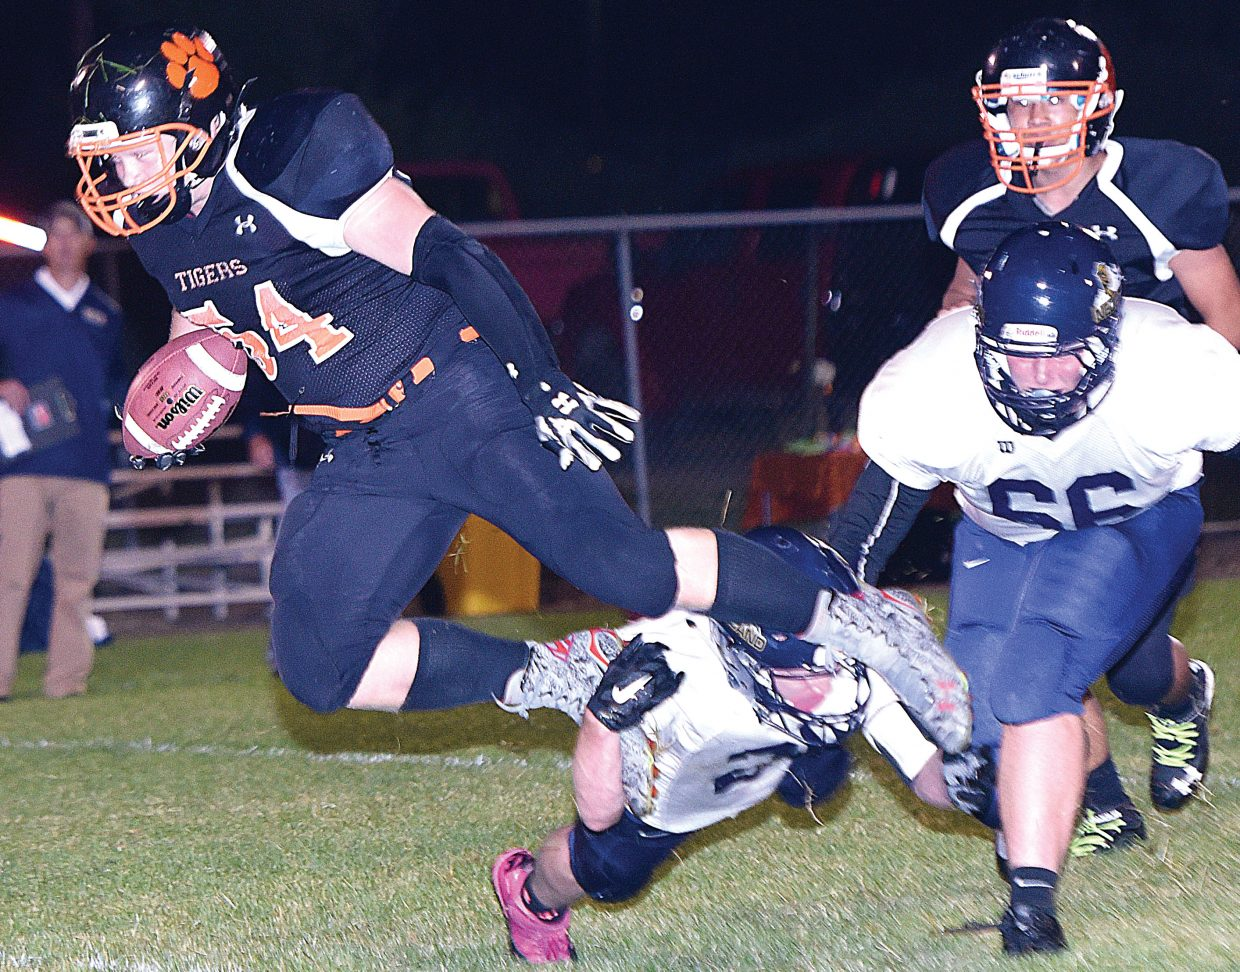 Hayden's Christian Carson is tripped up after a Nederland player made a nice open field tackle in Friday's game in Hayden. Carson, however, picked up a first down on the play and helped Hayden win the season opener with two touchdowns in the game. The Hayden Tigers topped the Nederland Panthers, 12-6.